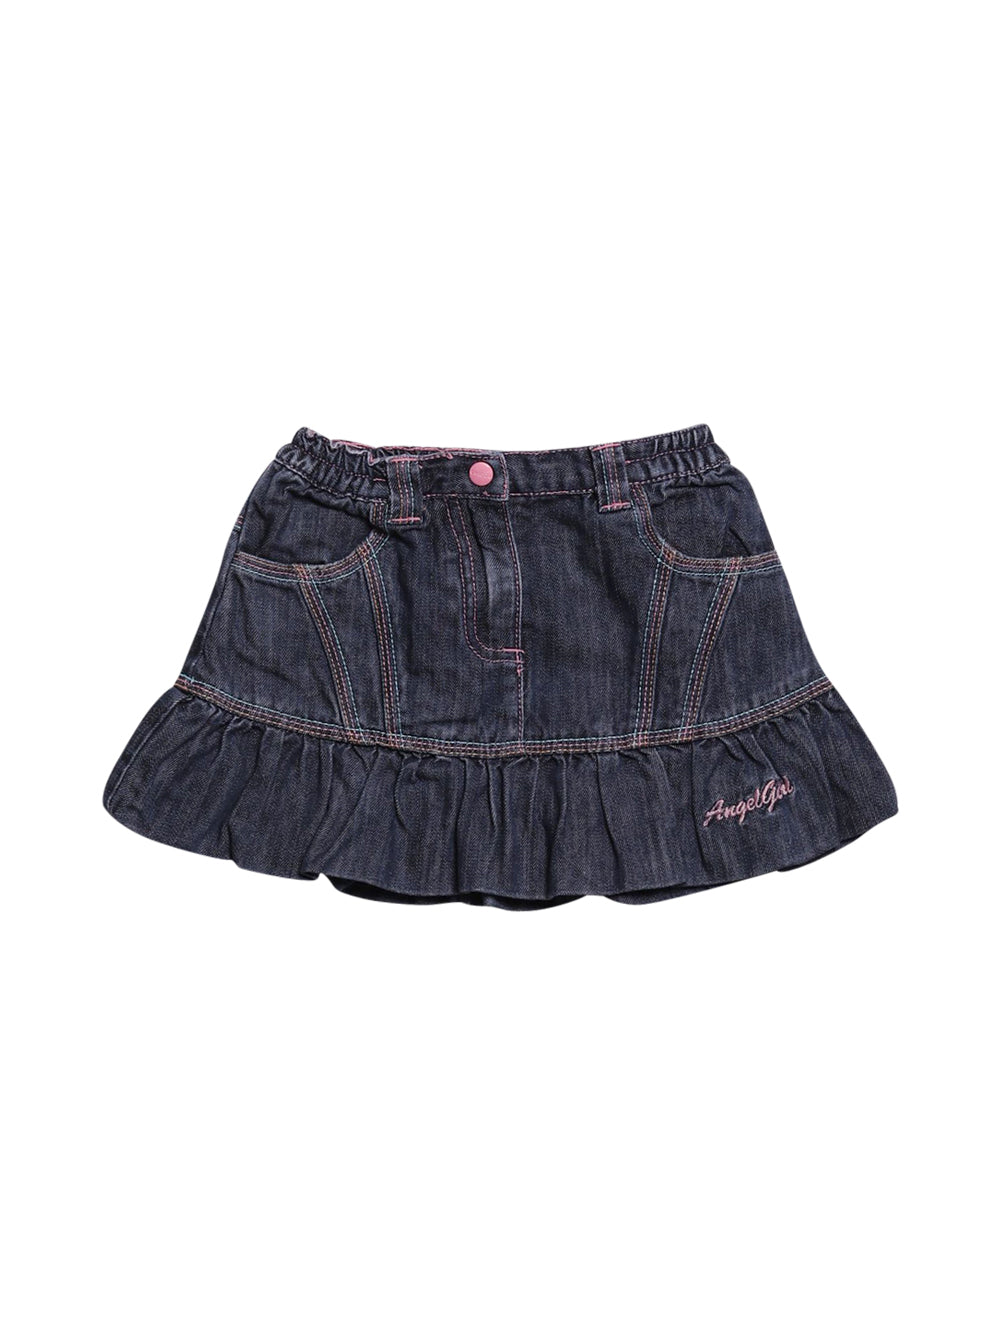 Front photo of Preloved Chicco Blue Girl's skirt - size 18-24 mths